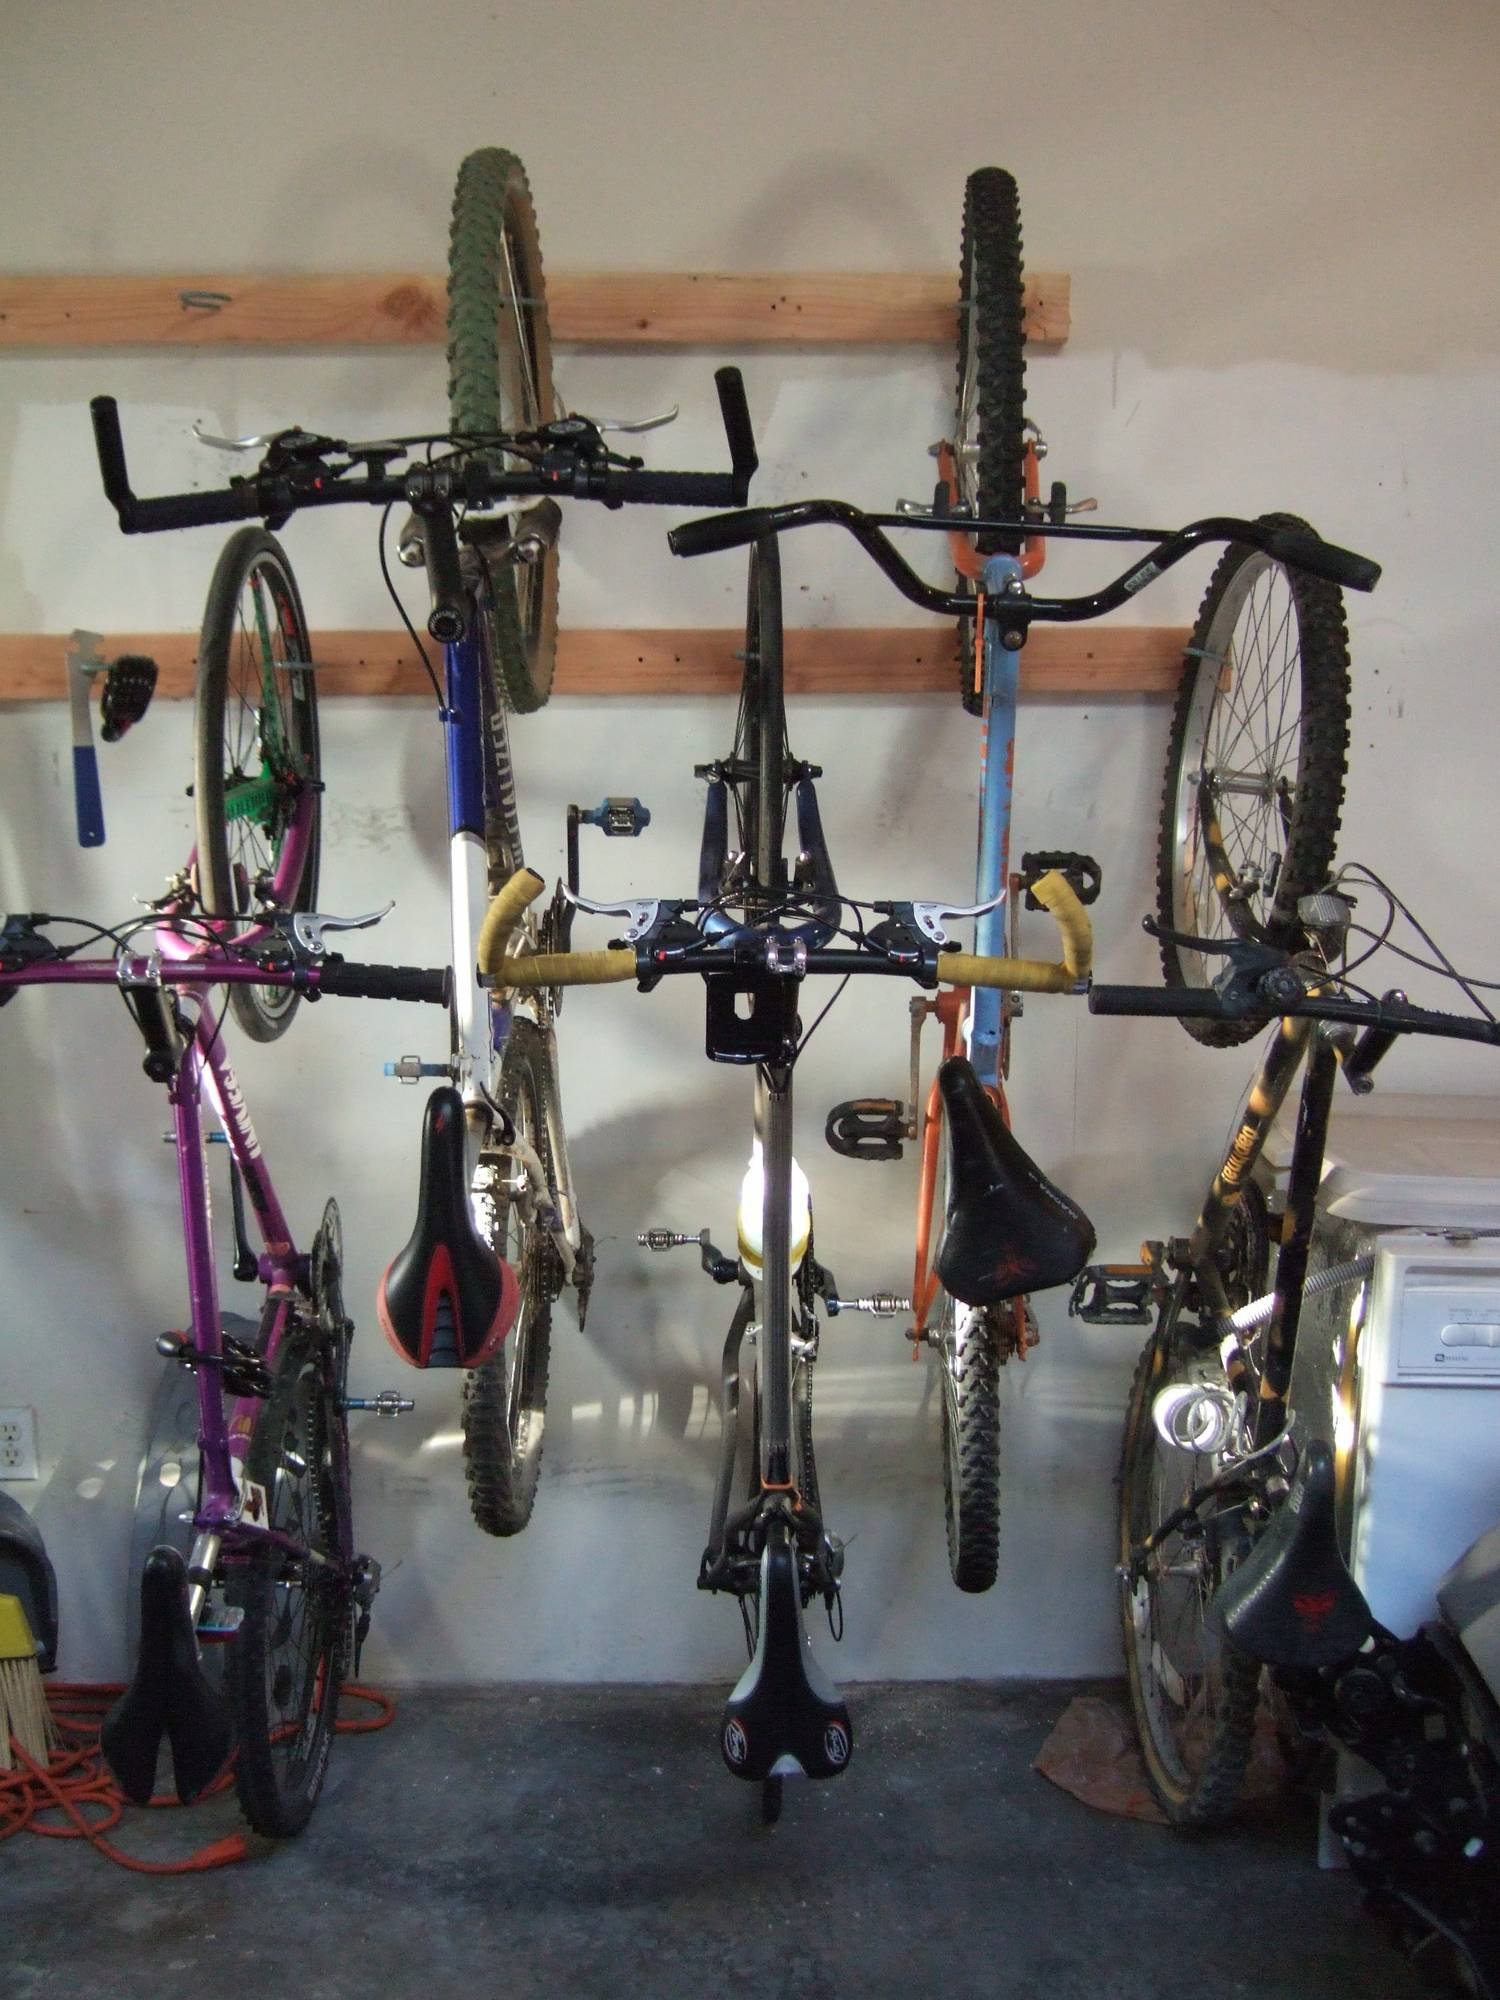 Picture of Bike Rack / Bike Storage for the Home or Apartment ... & Bike Rack / Bike Storage for the Home or Apartment: 8 Steps (with ...